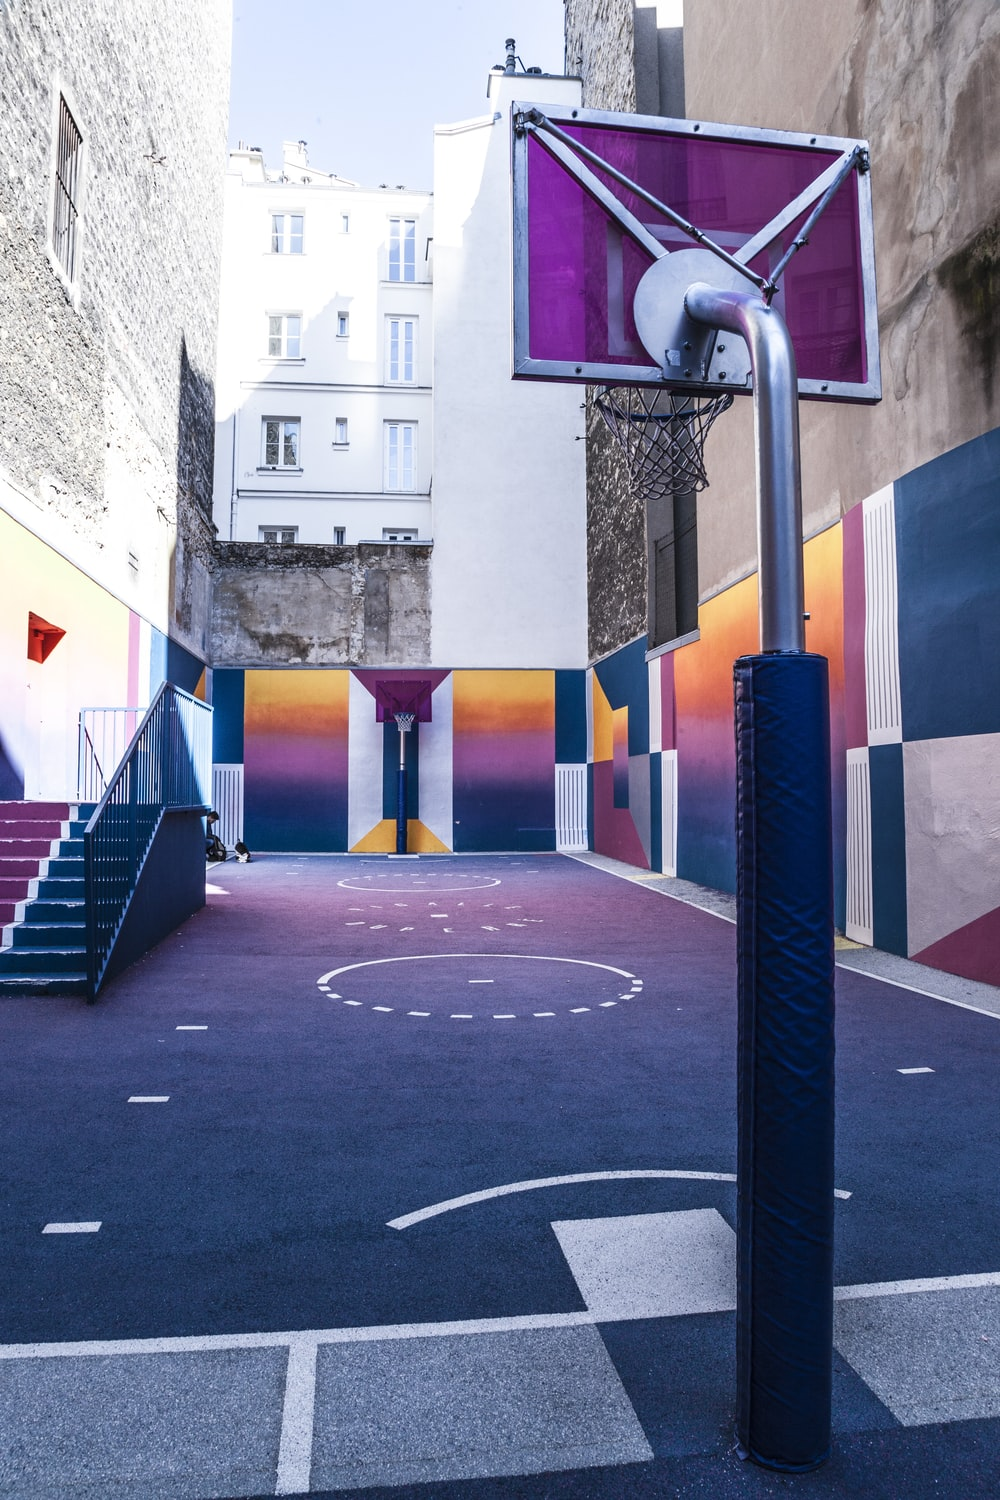 purple and orange basketball court during day time